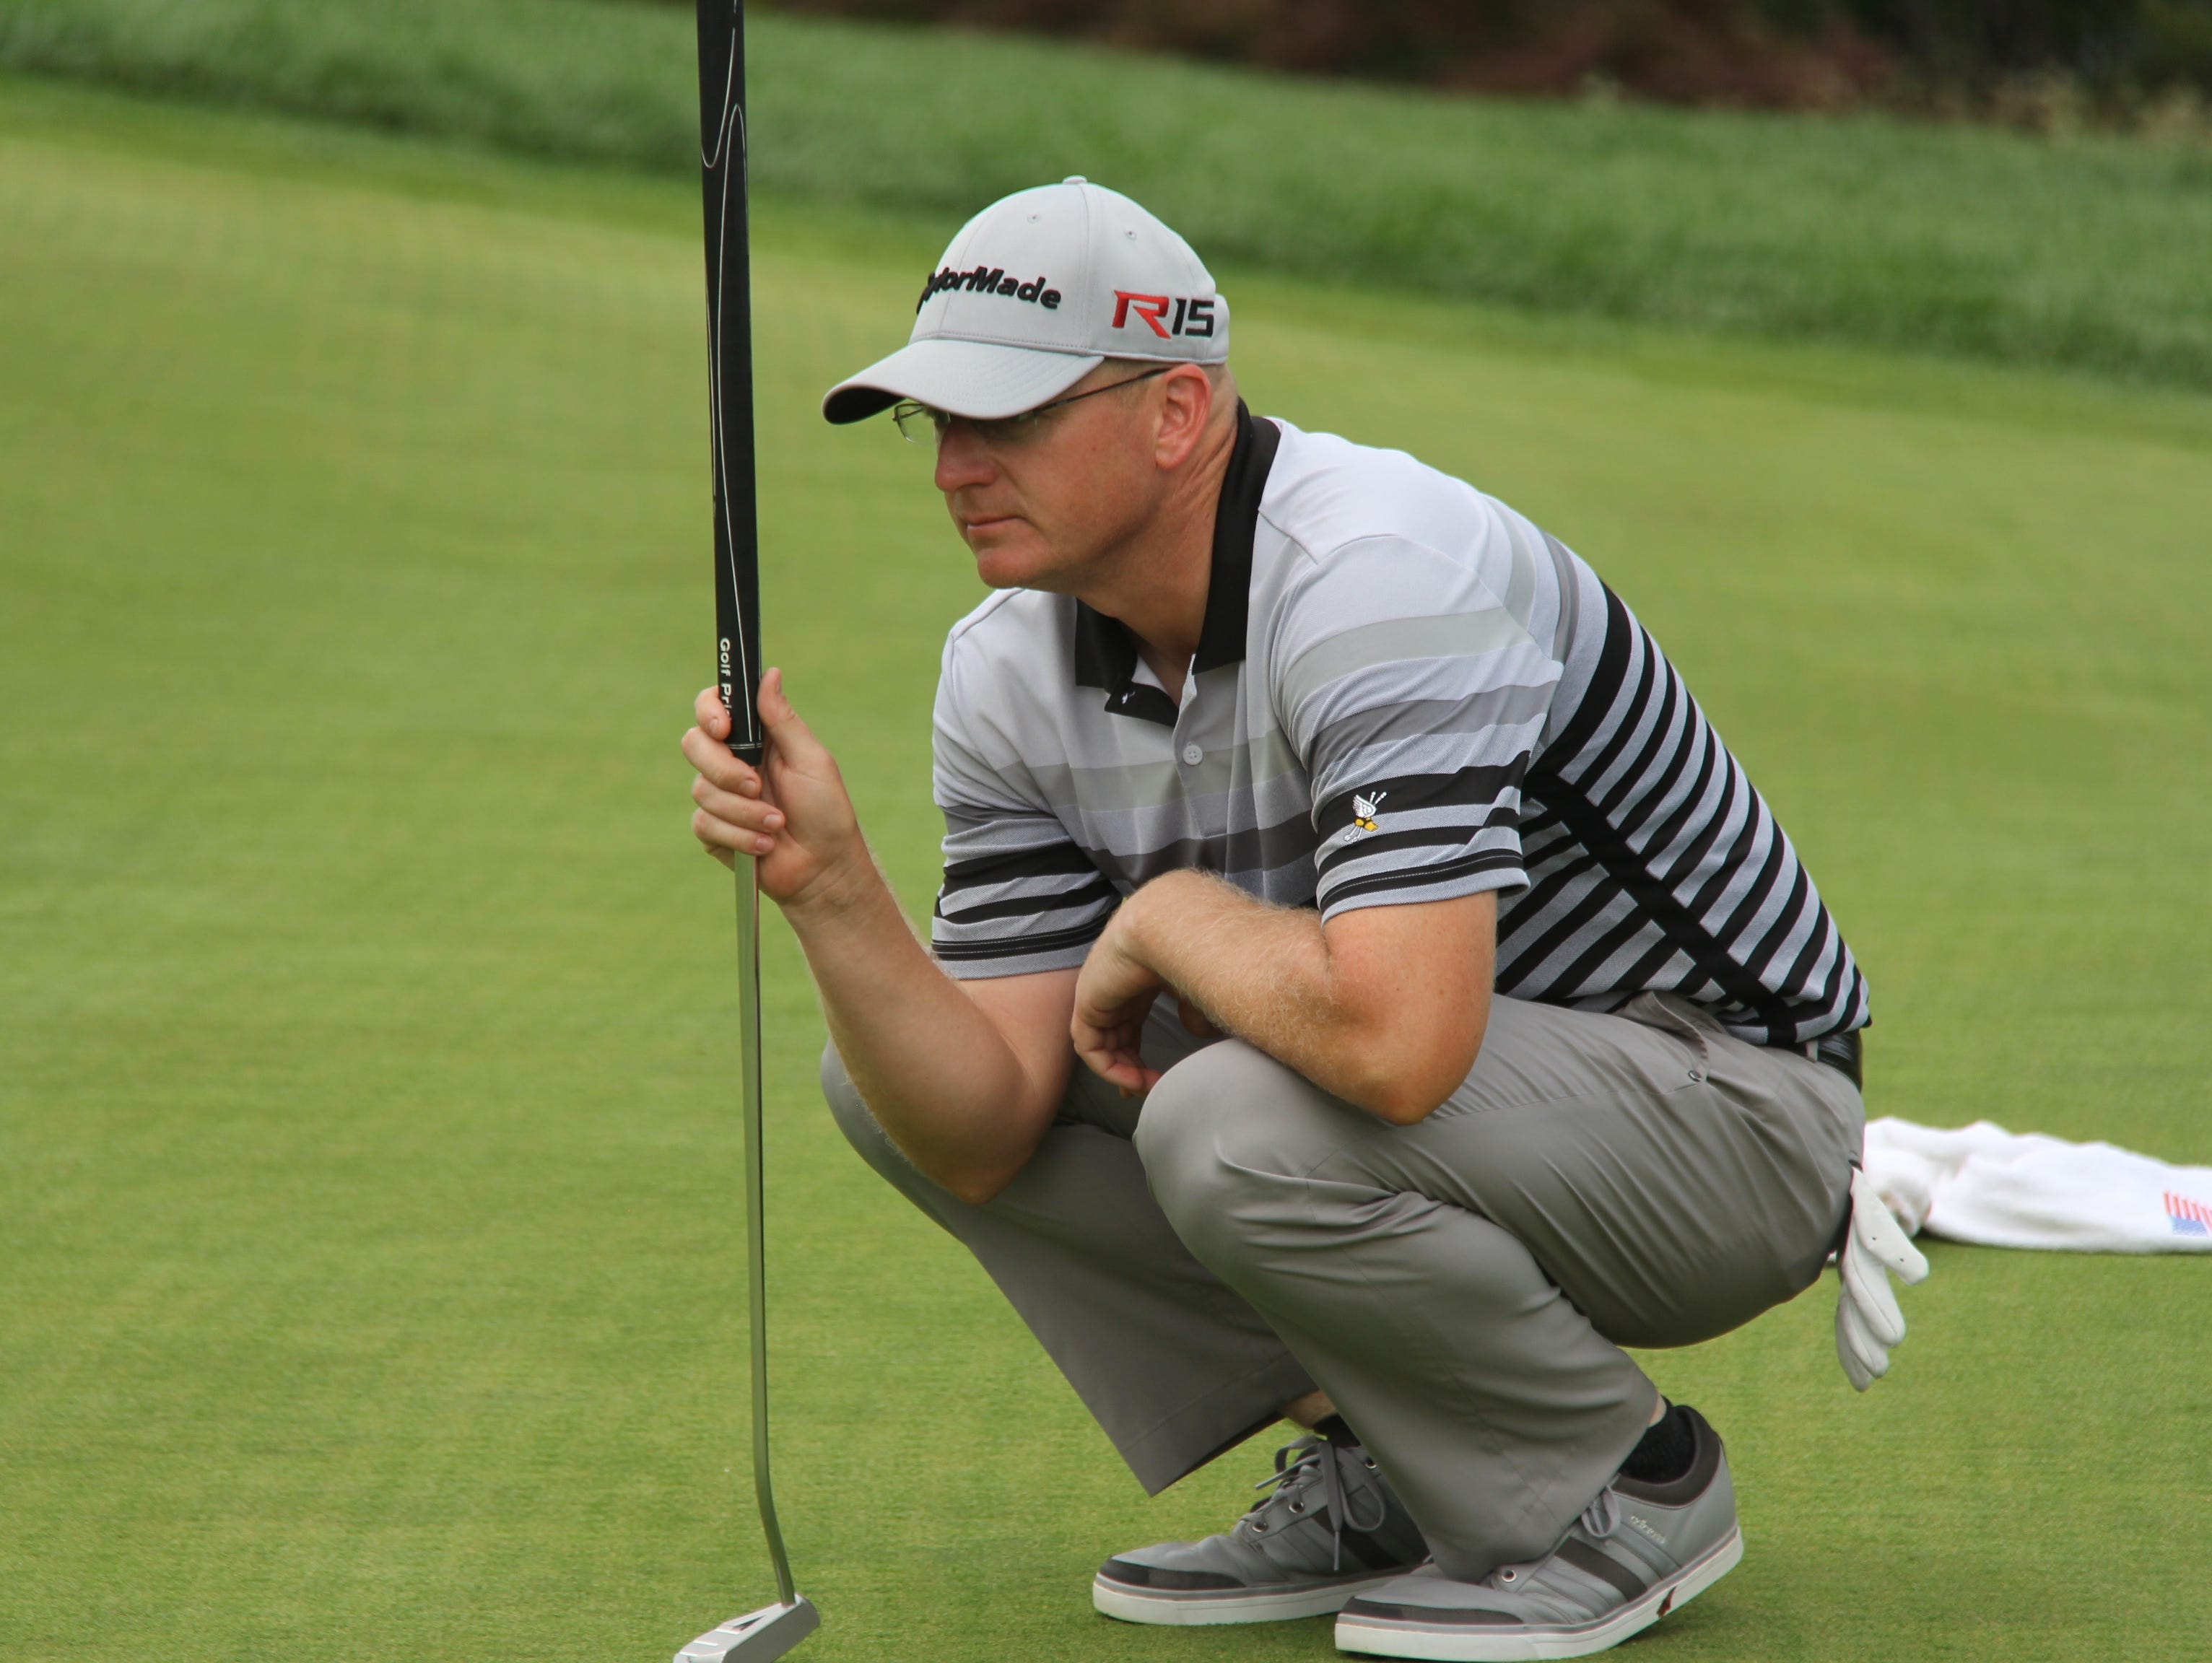 Winged Foot's Grant Sturgeon lines up a putt Tuesday during the first round of the Met PGA Championship at Fenway Gold Club.